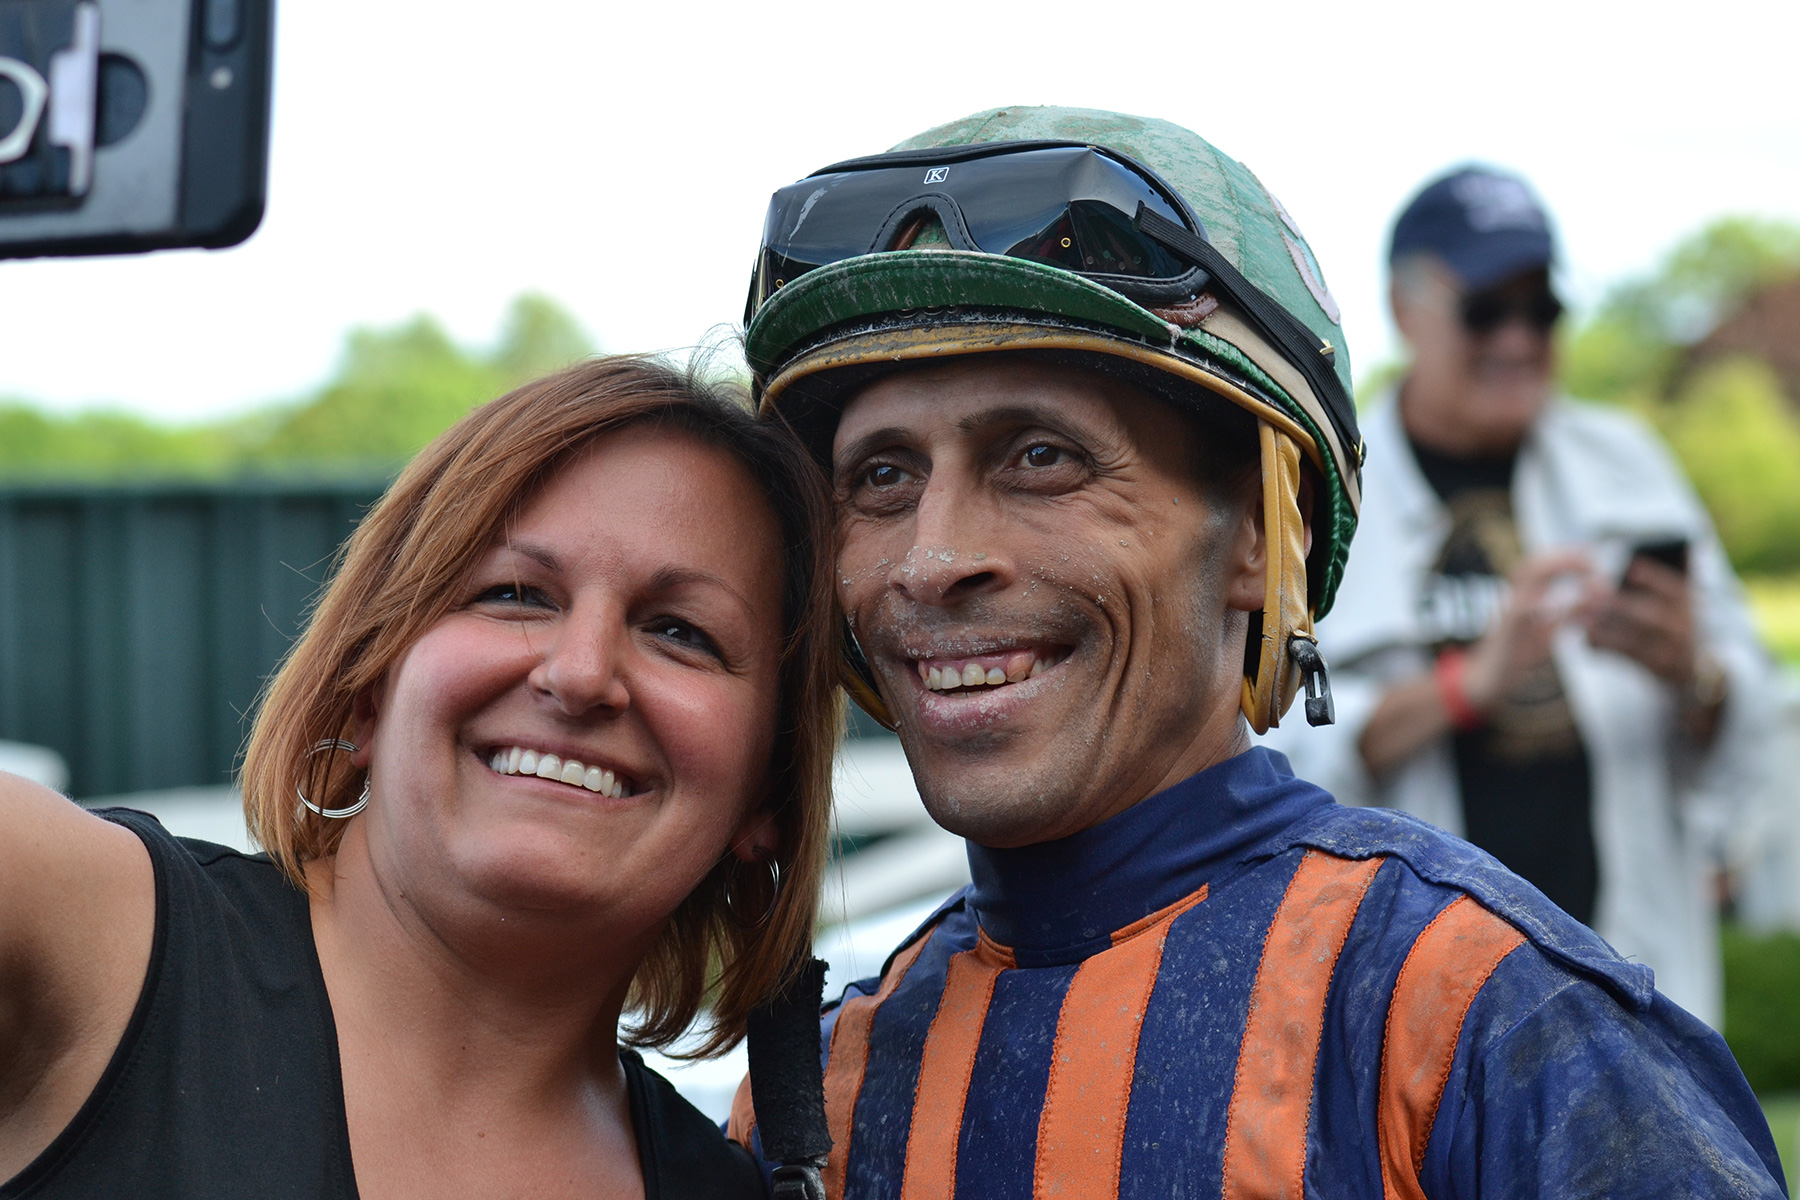 Andy Hernandez Sanchez takes selfies with well-wishers after he wins the last race at Suffolk Downs